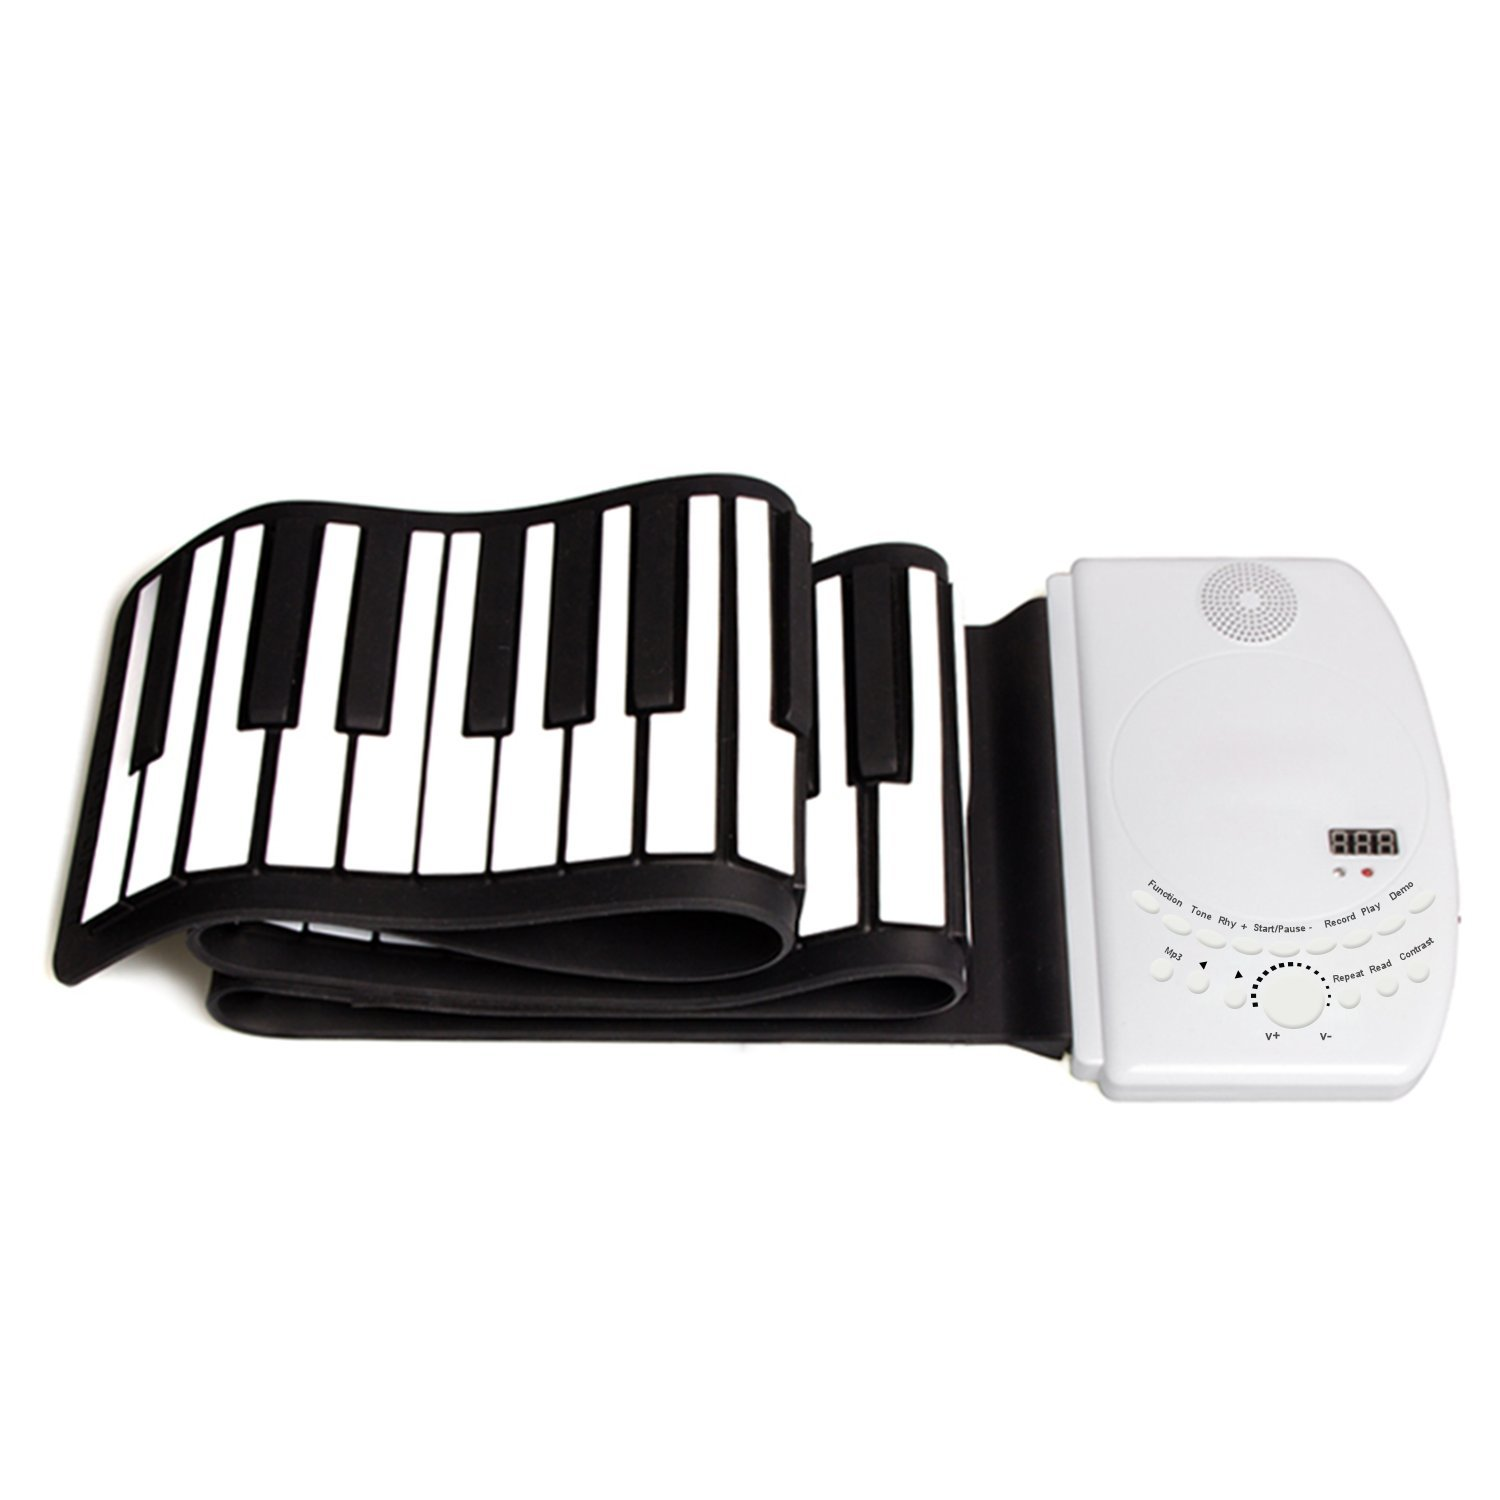 DH-K61 Portable Flexible Roll Up Piano Keyboard 61 Keys USB Midi Electronic Piano Keyboard for Beginner Children Practice Musical Instruments EVERYONE GAIN SCIENCES&TECHNOLOGY CO. LTD